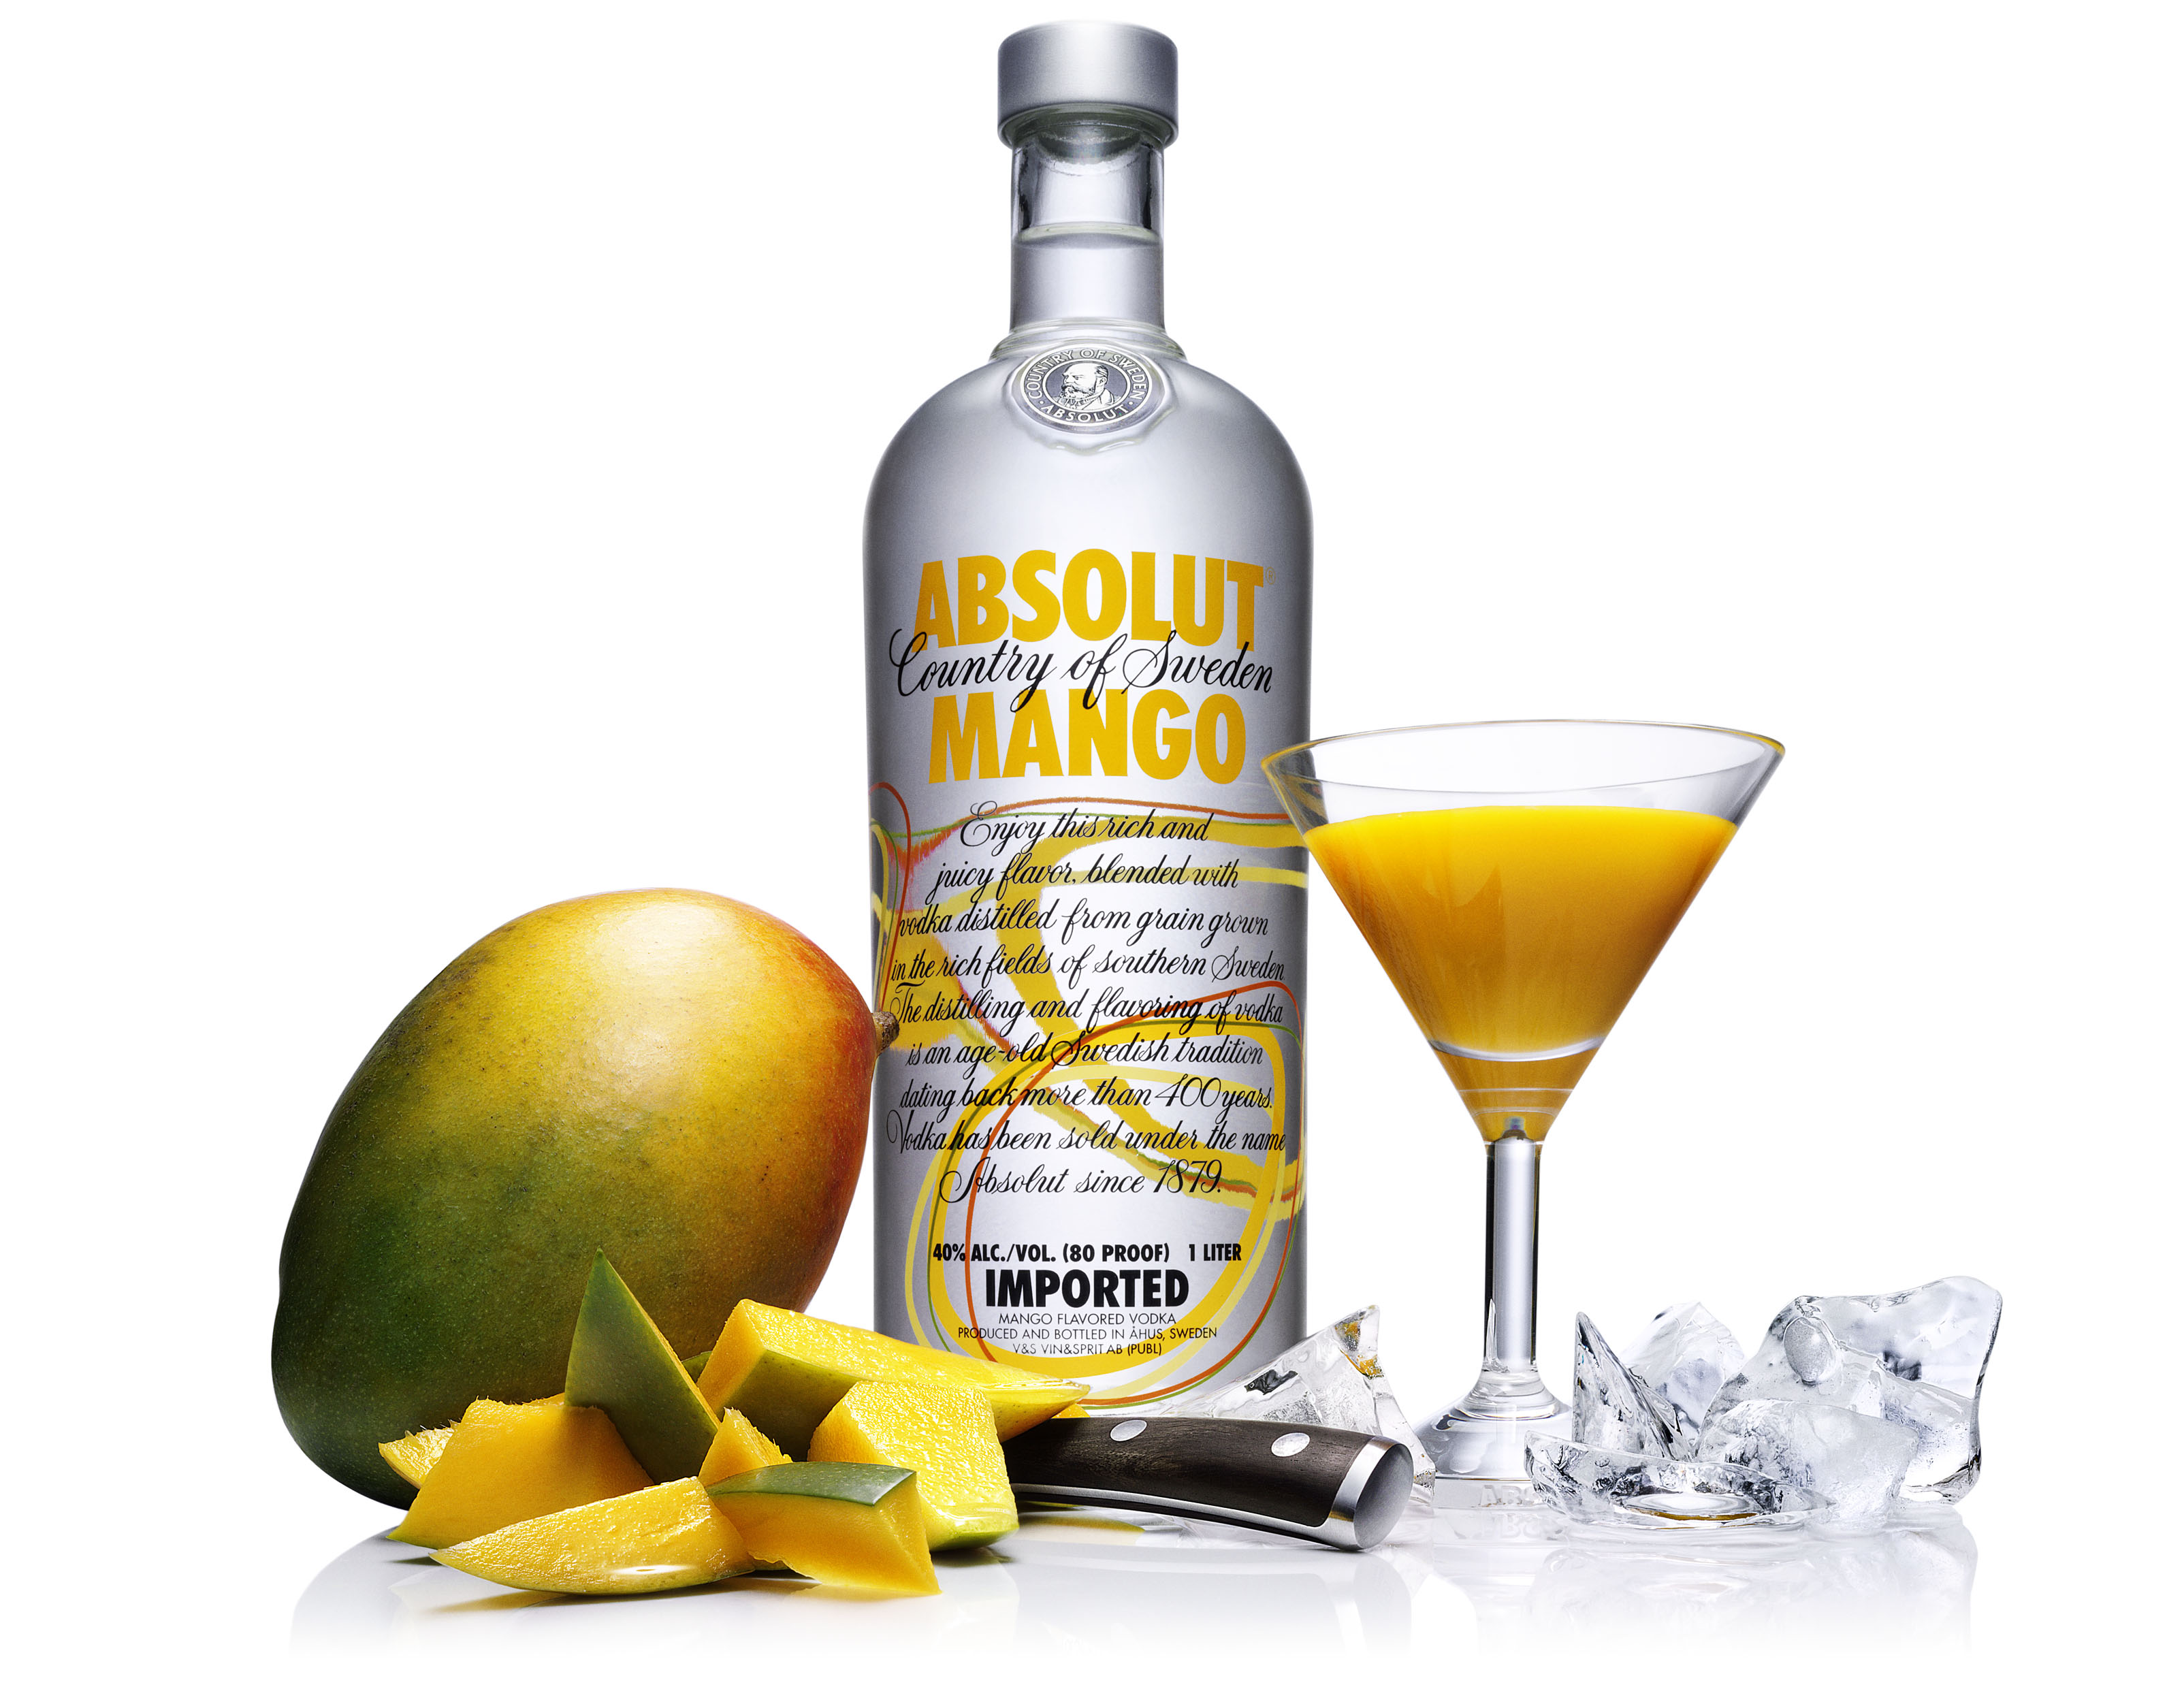 jensmortensen-absolut-vodka-c560ae06